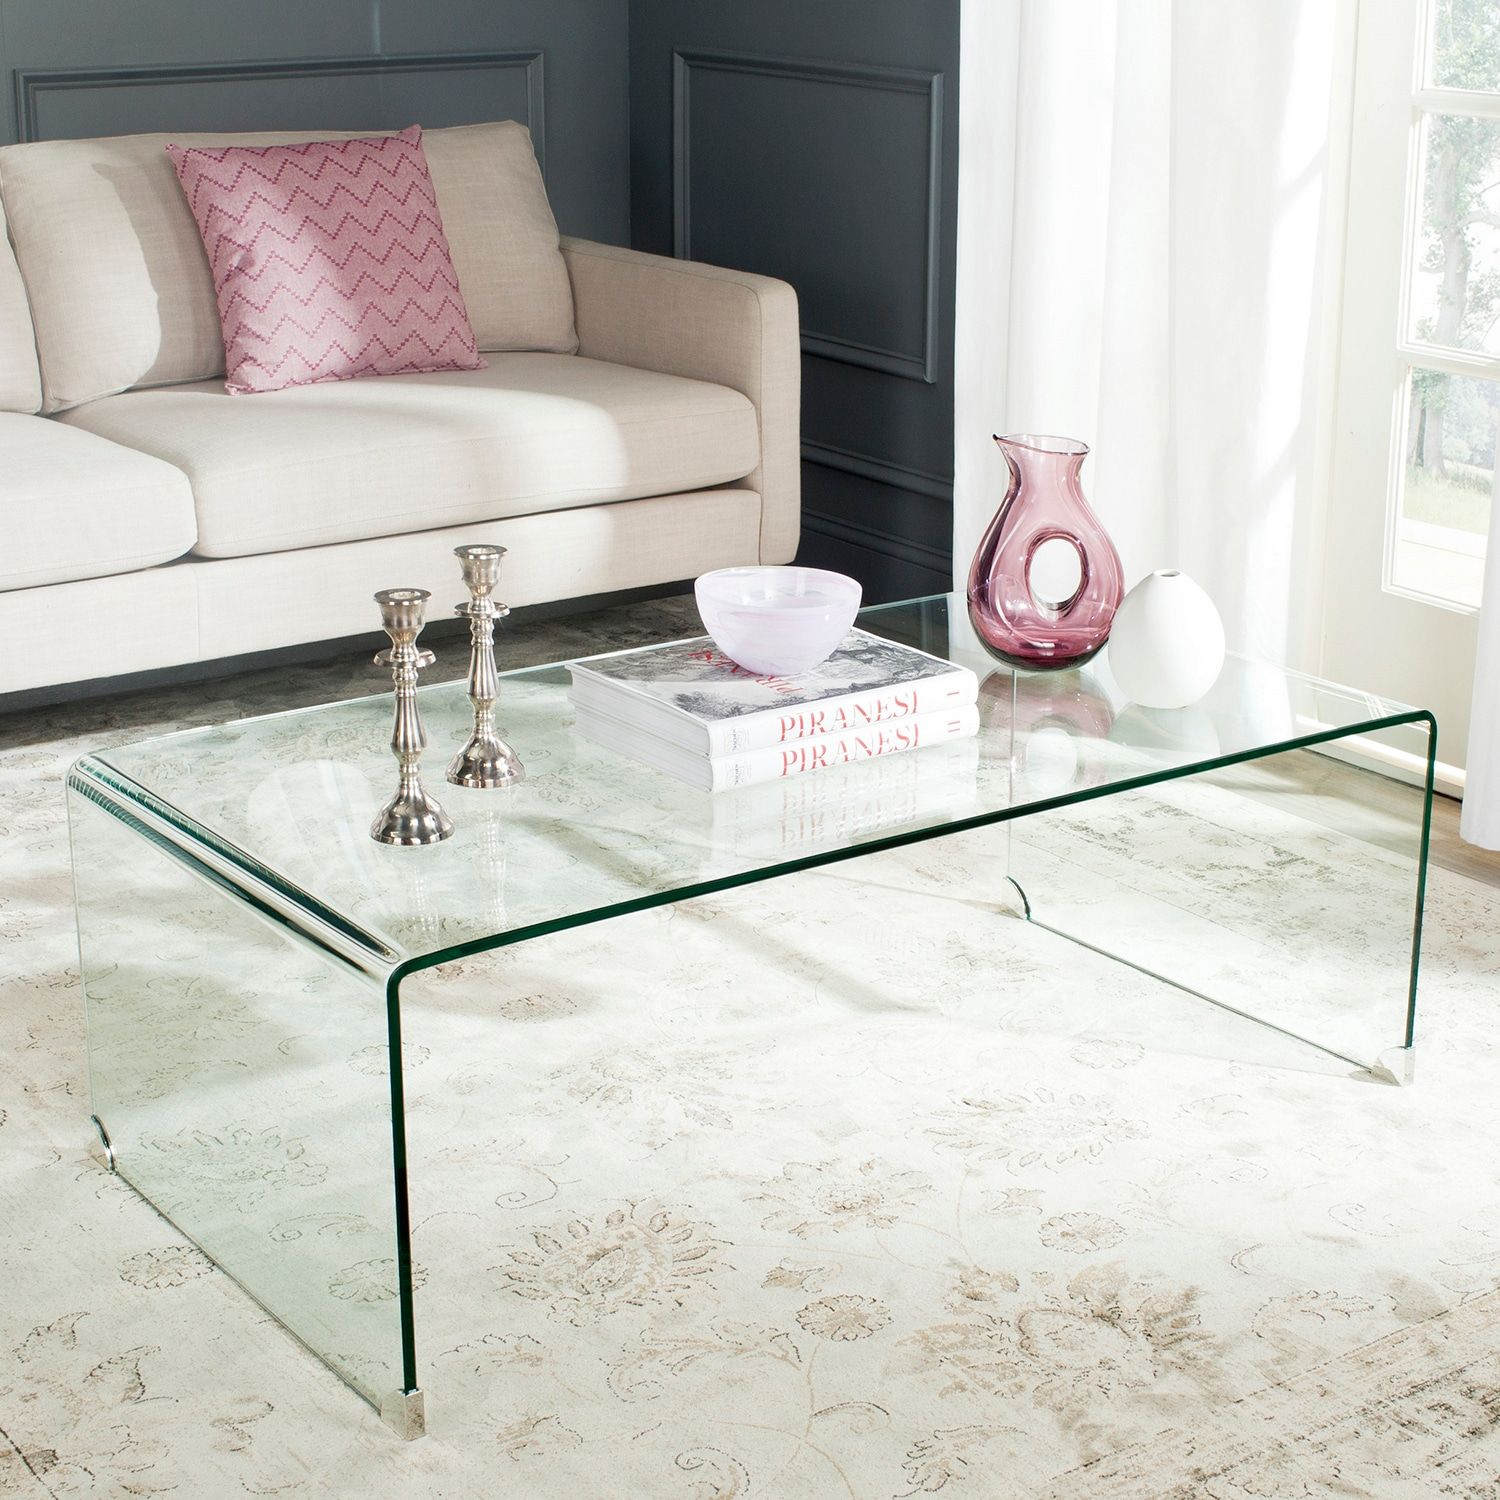 Peekaboo Coffee Table